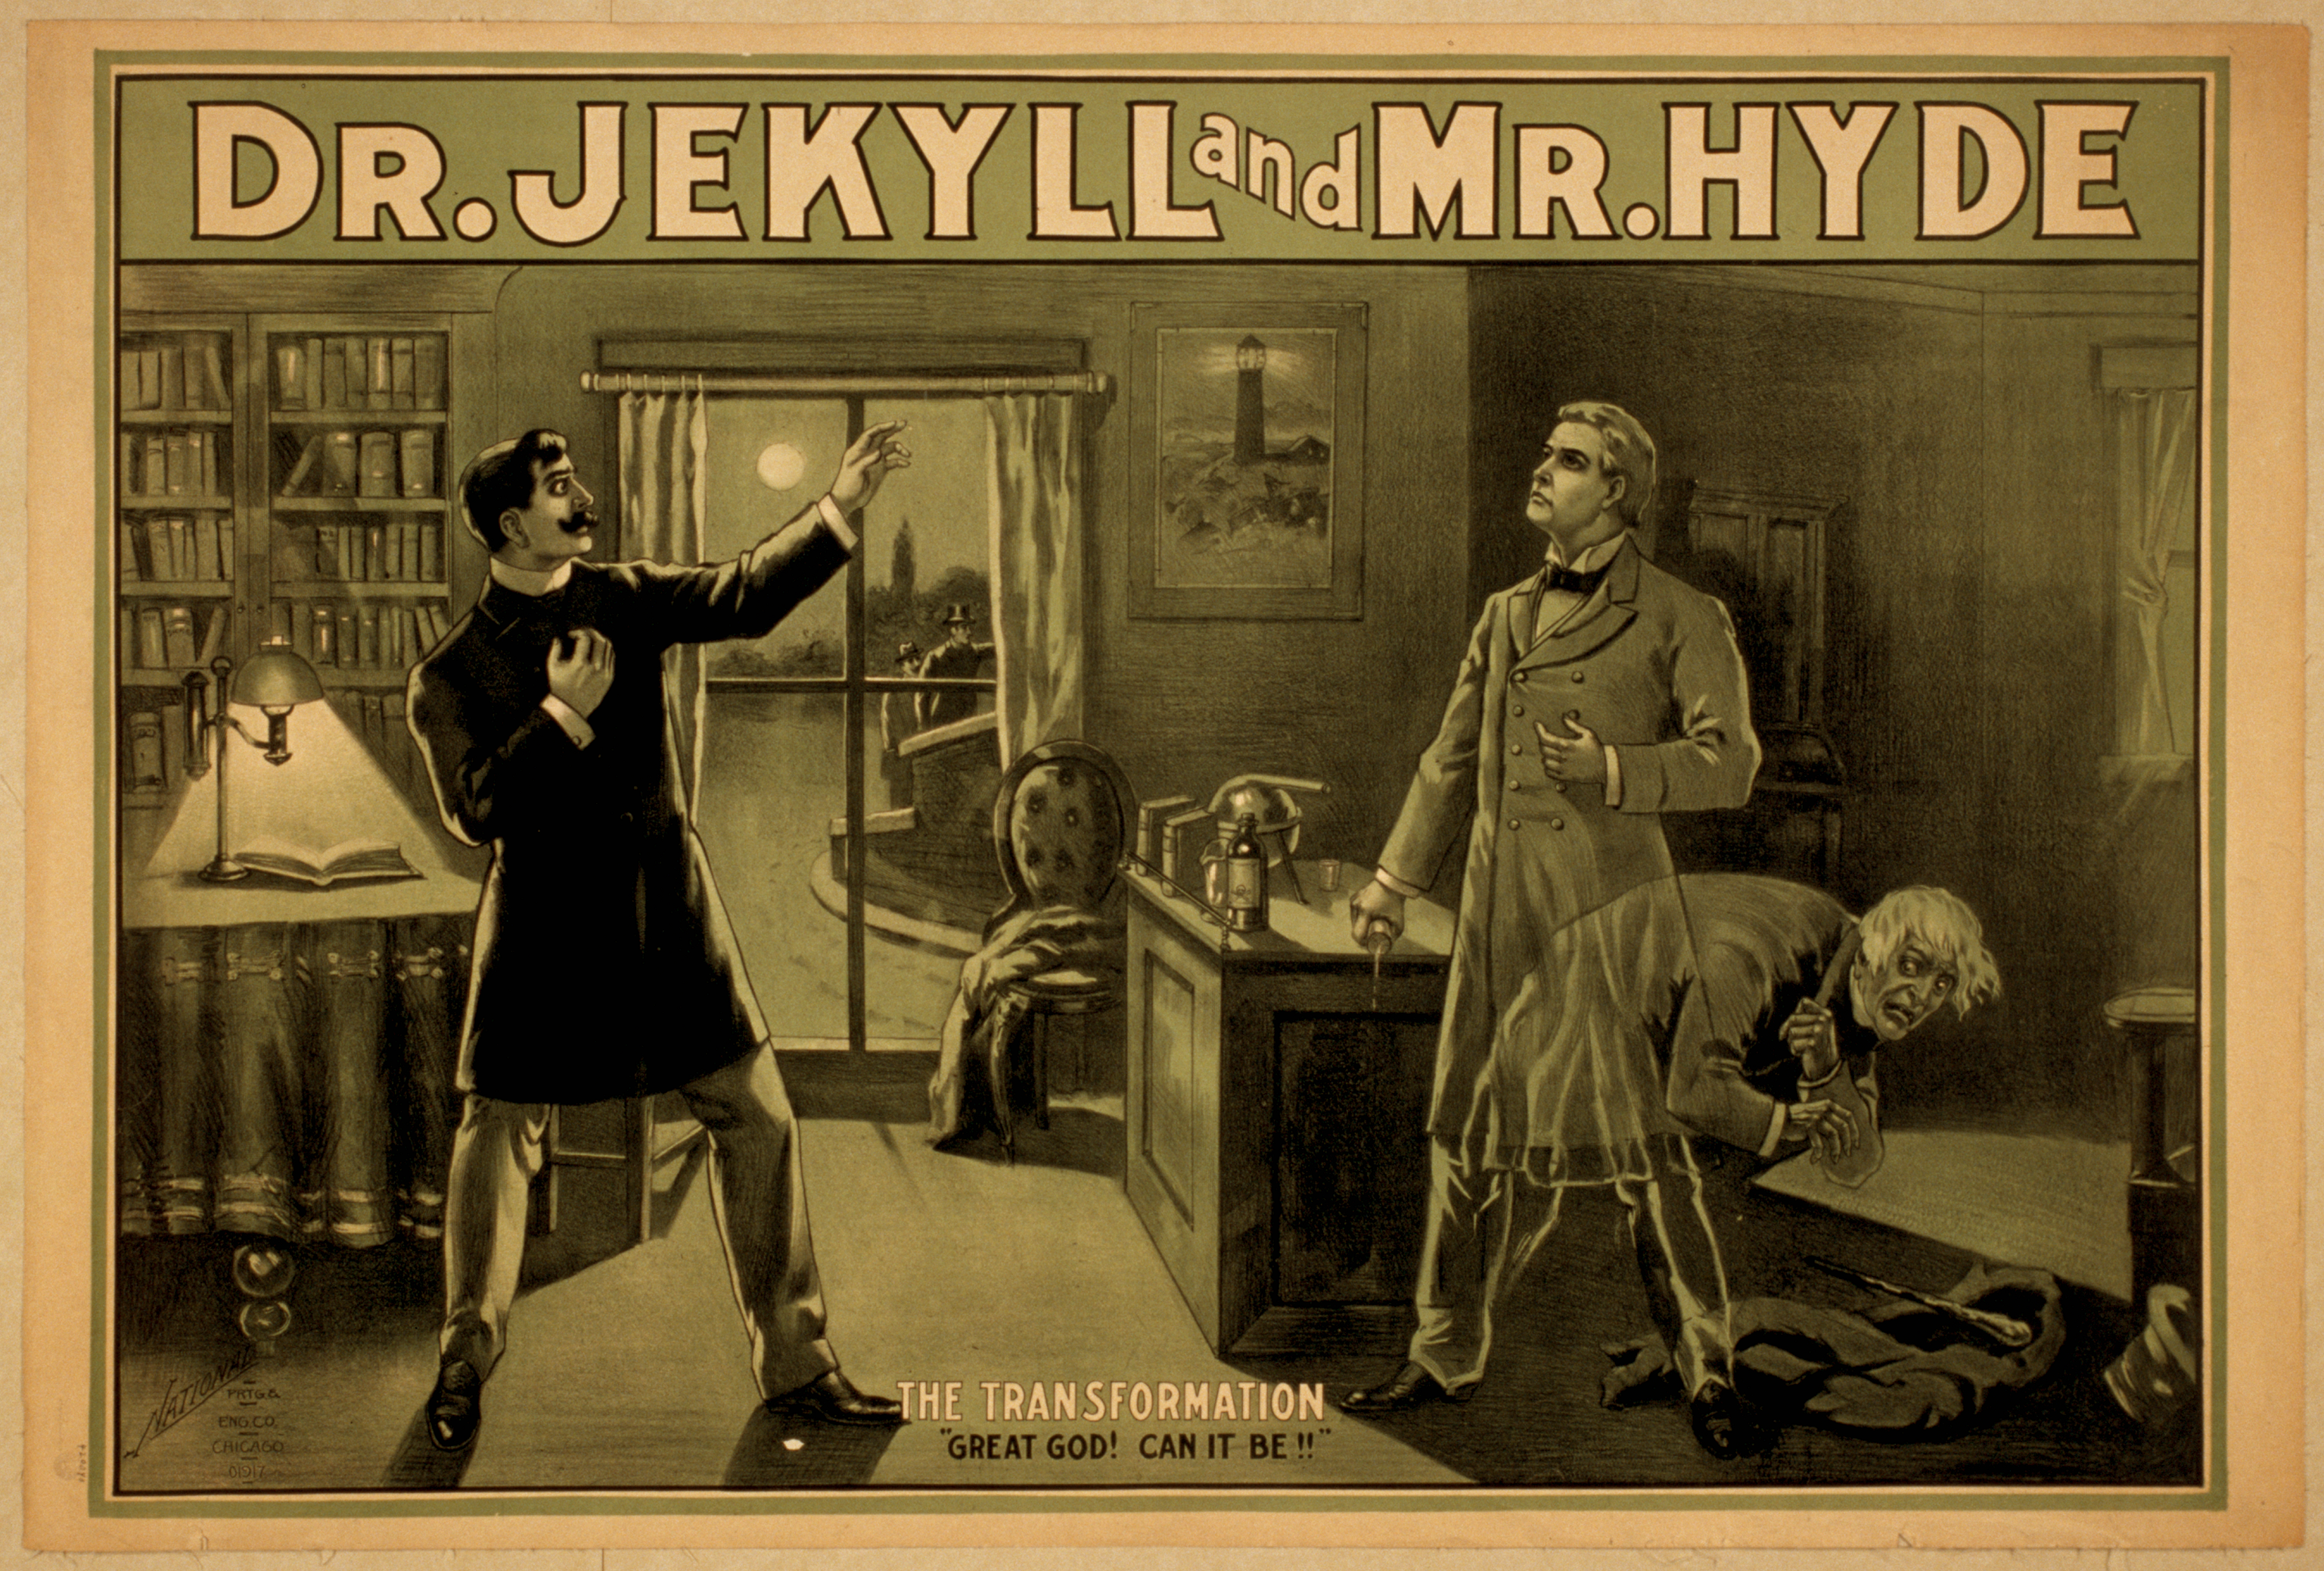 An early poster of Dr. Jekyll and Mr. Hyde